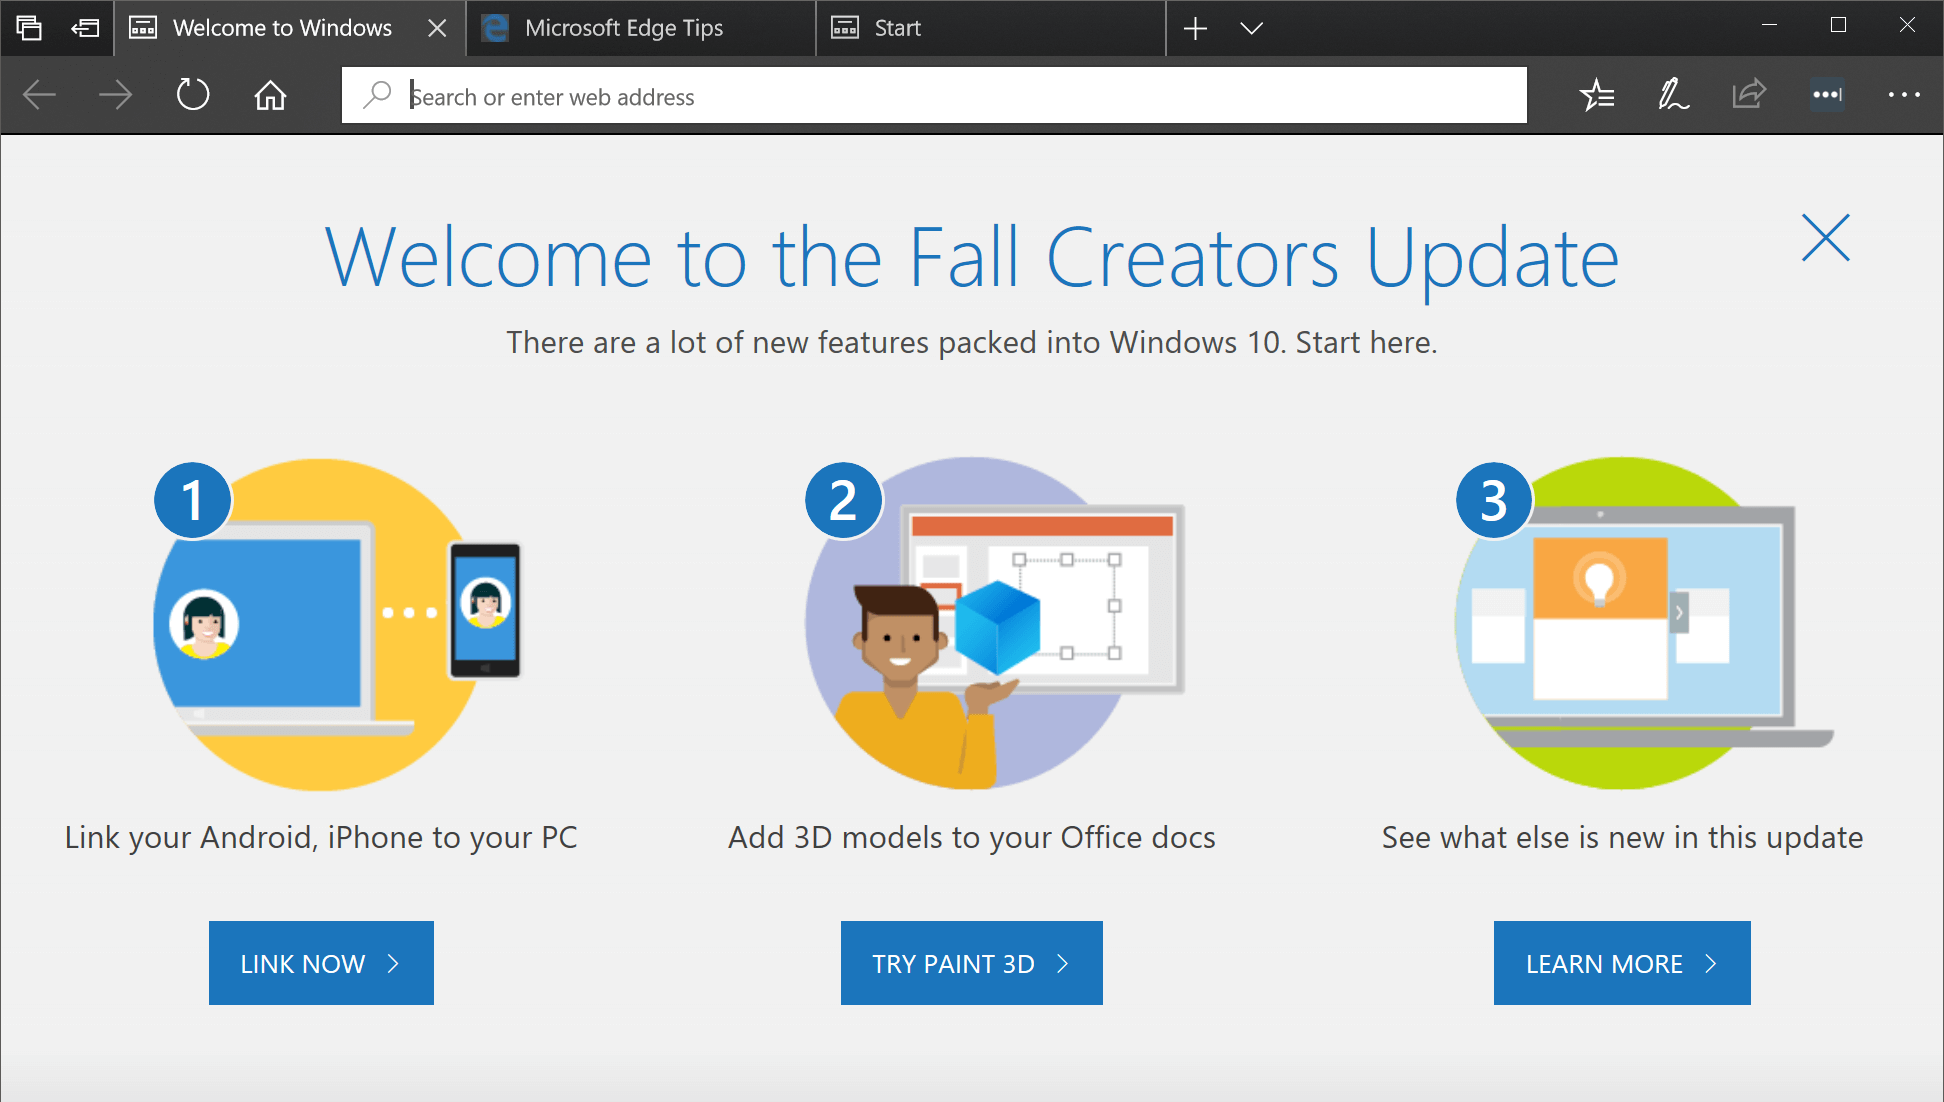 Windows 10 Fall Creators Update is now available: A collection of many small and medium-sized improvements